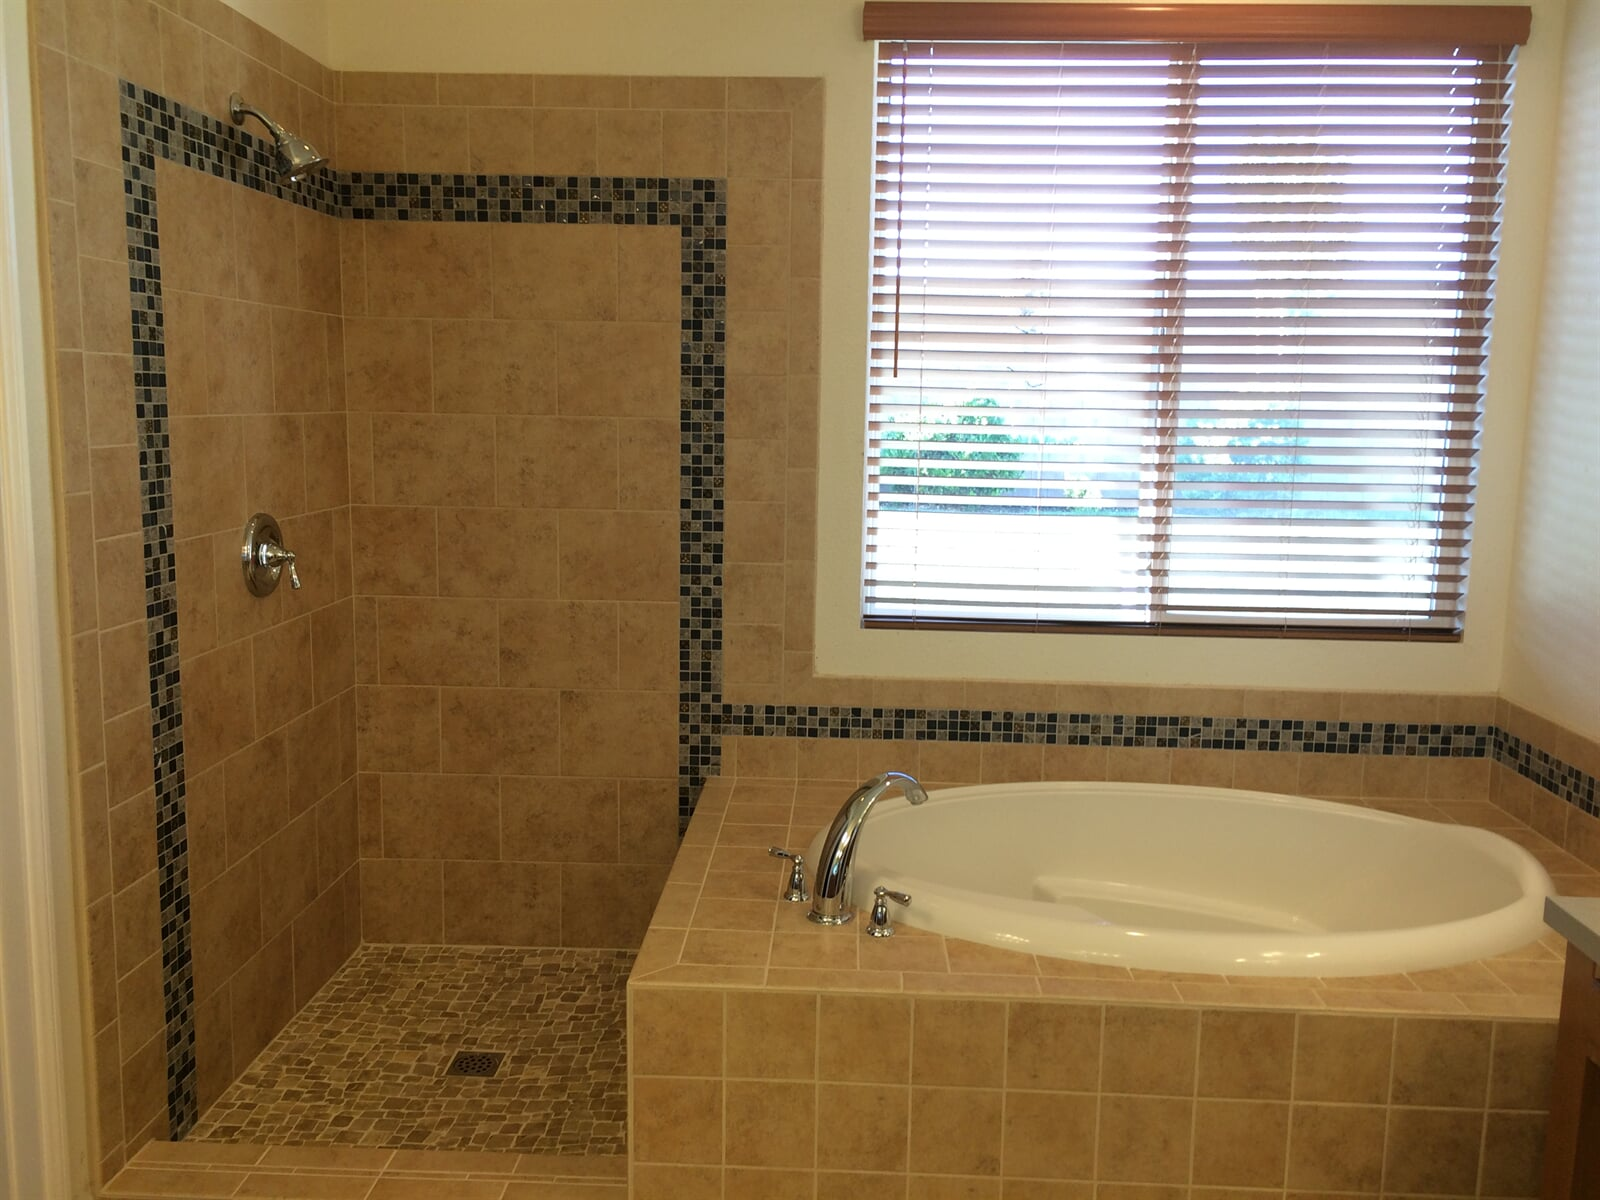 after tile installation and remodel